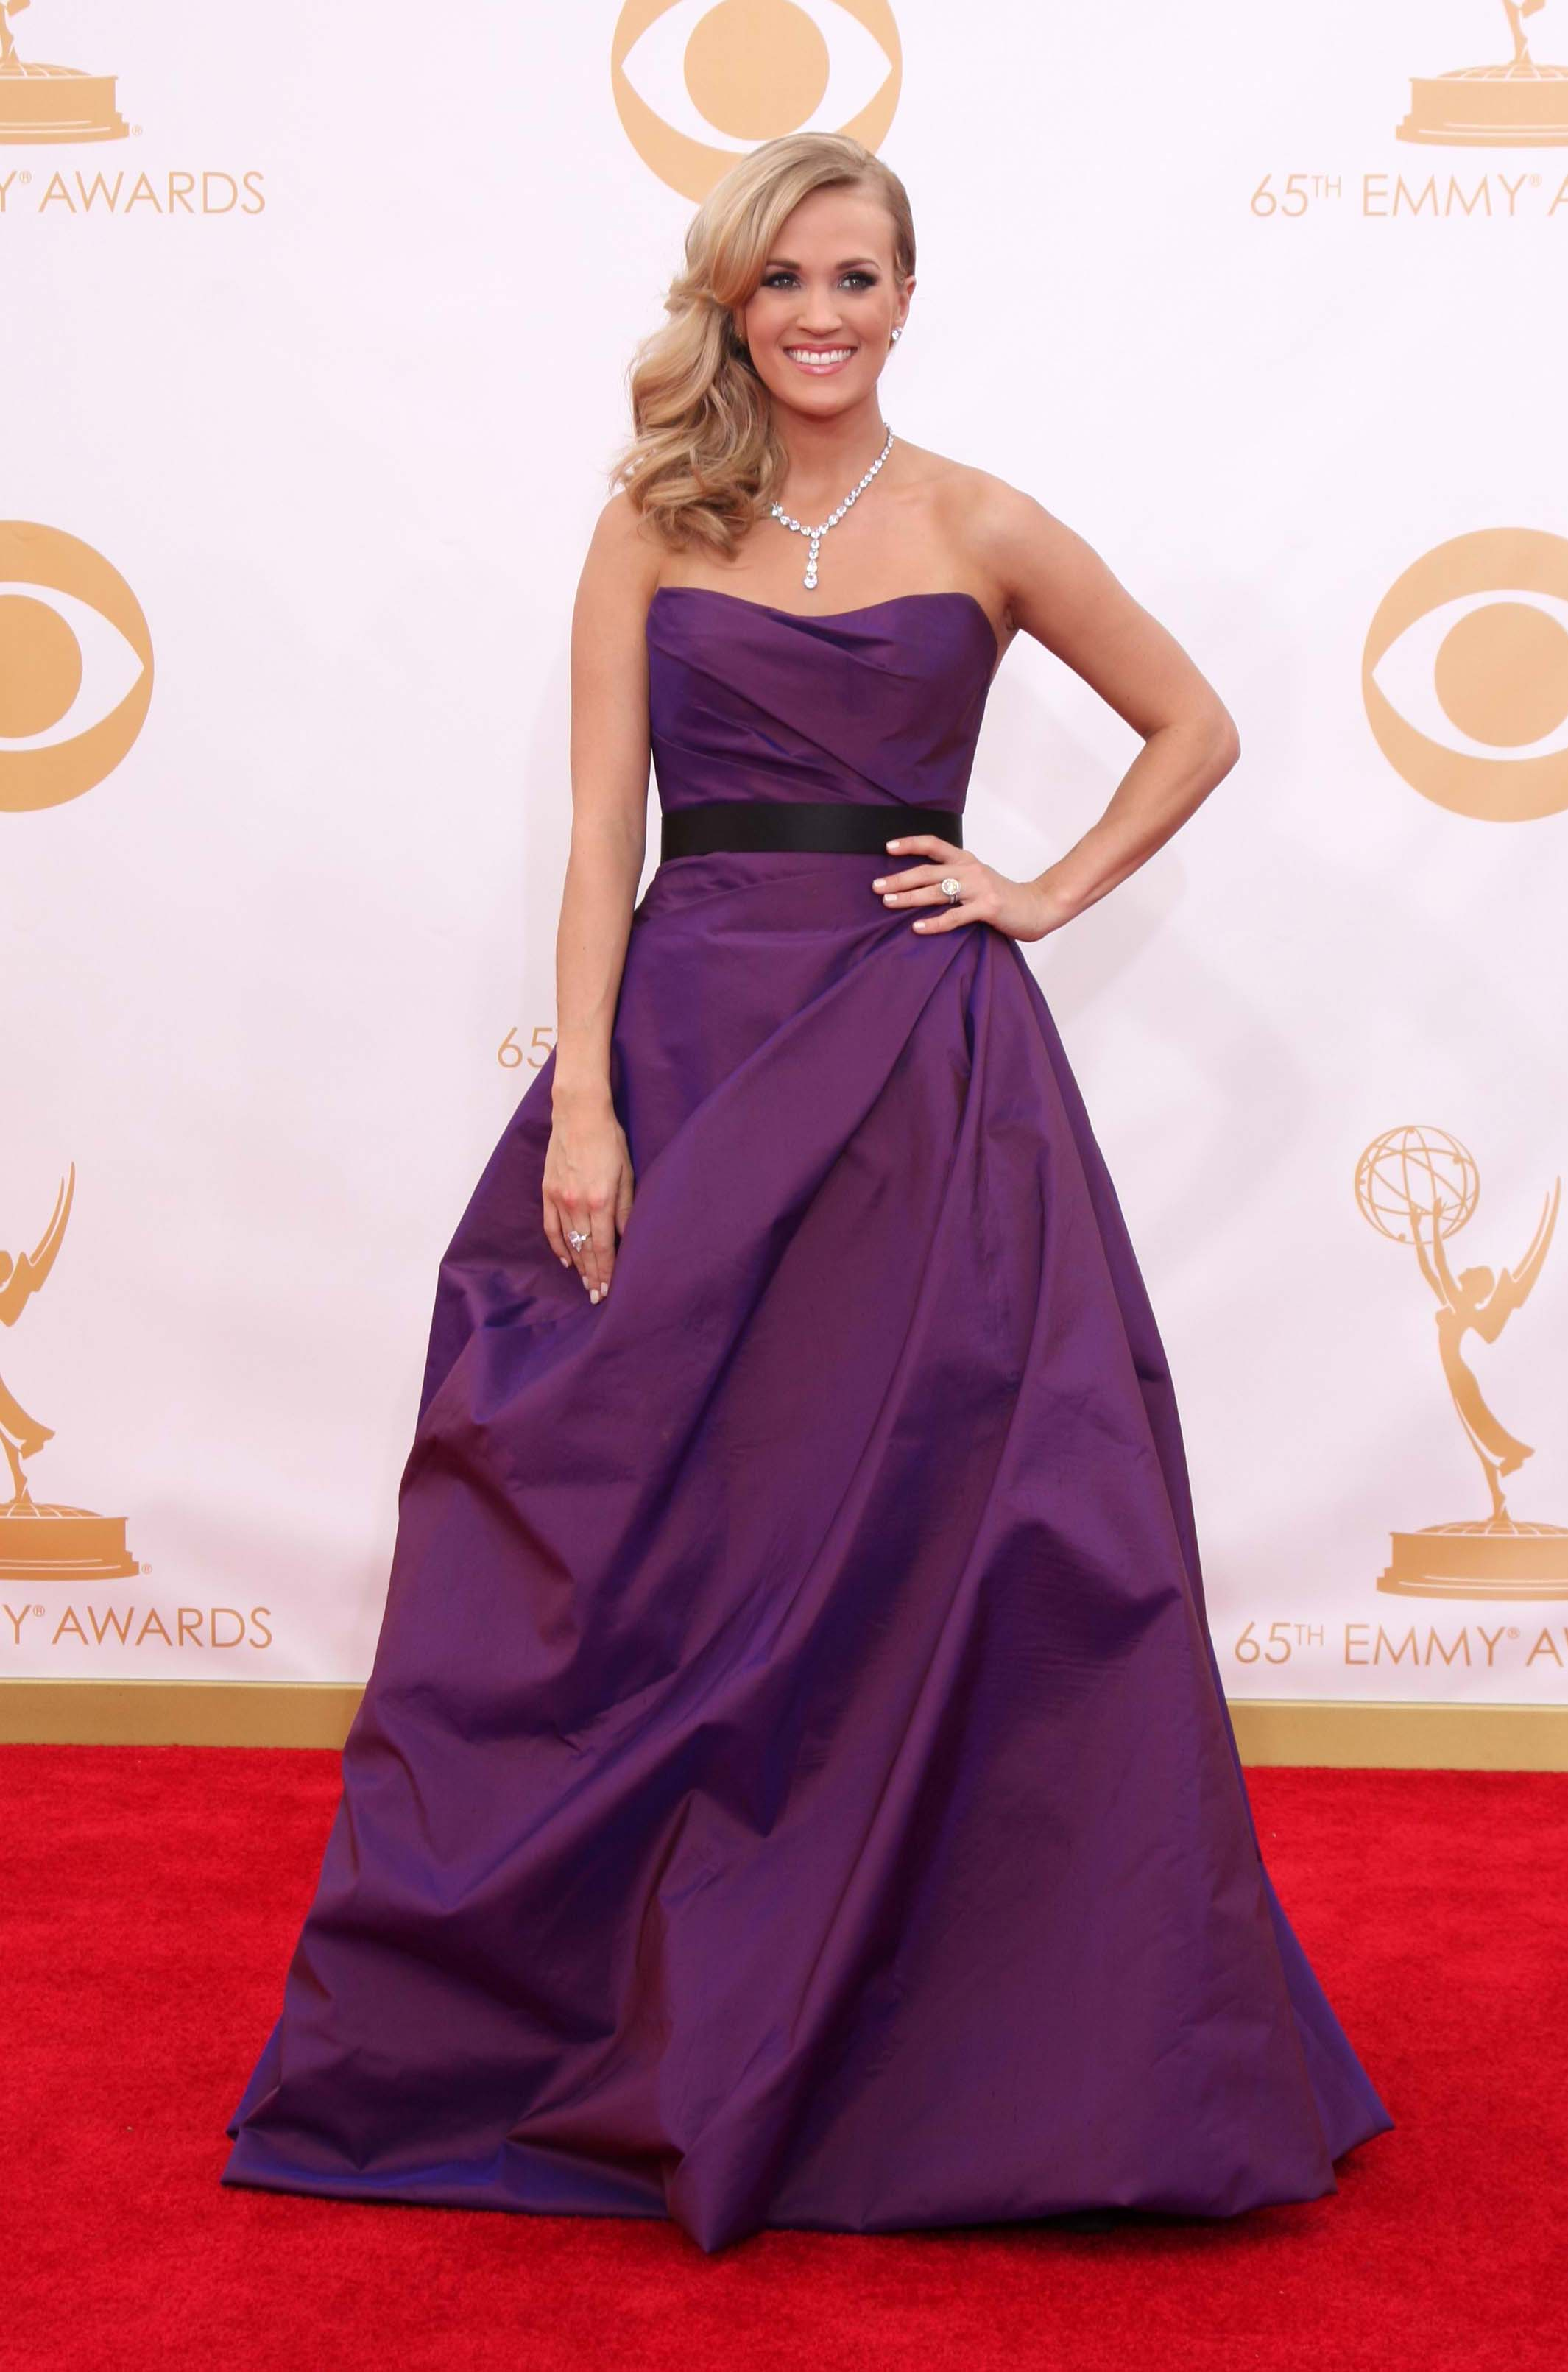 Carrie Underwood Popped Up At The 2017 Emmys Wearing A Voluminous Iridescent Deep Plum Ball Gown